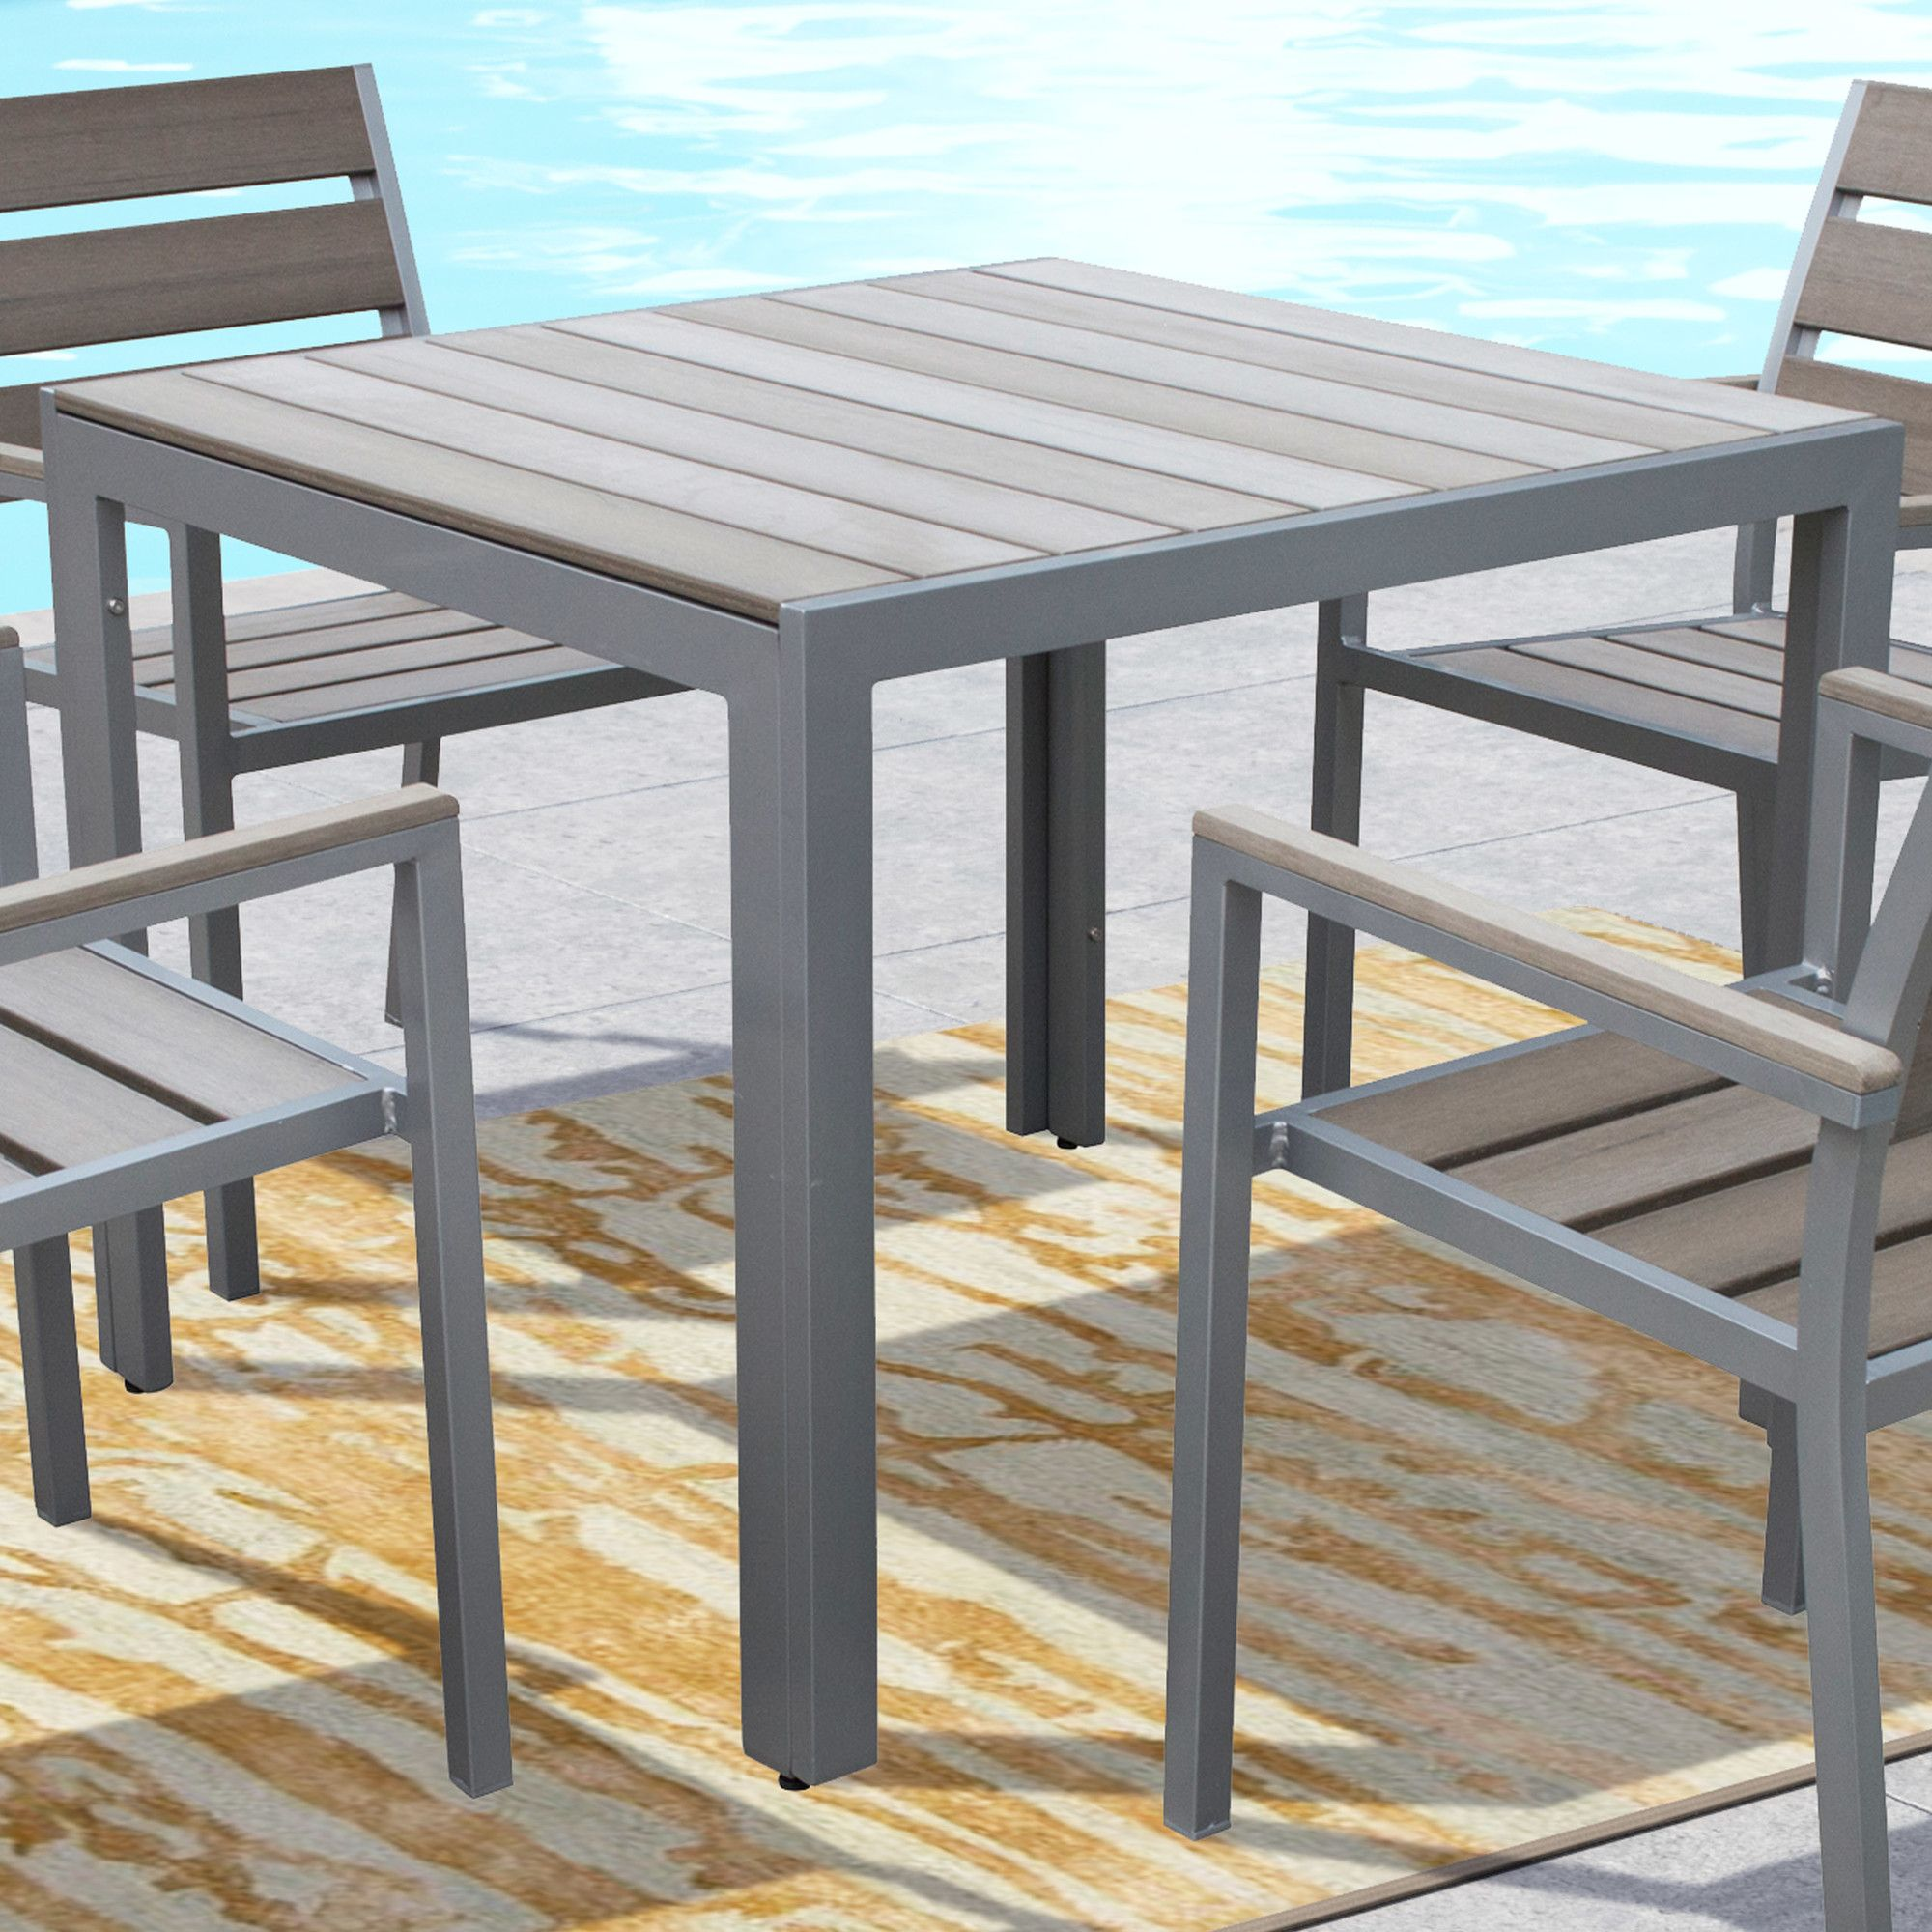 Kyree Dining Table   Outdoor dining chairs, Patio dining ... on Bade Outdoor Living id=81188